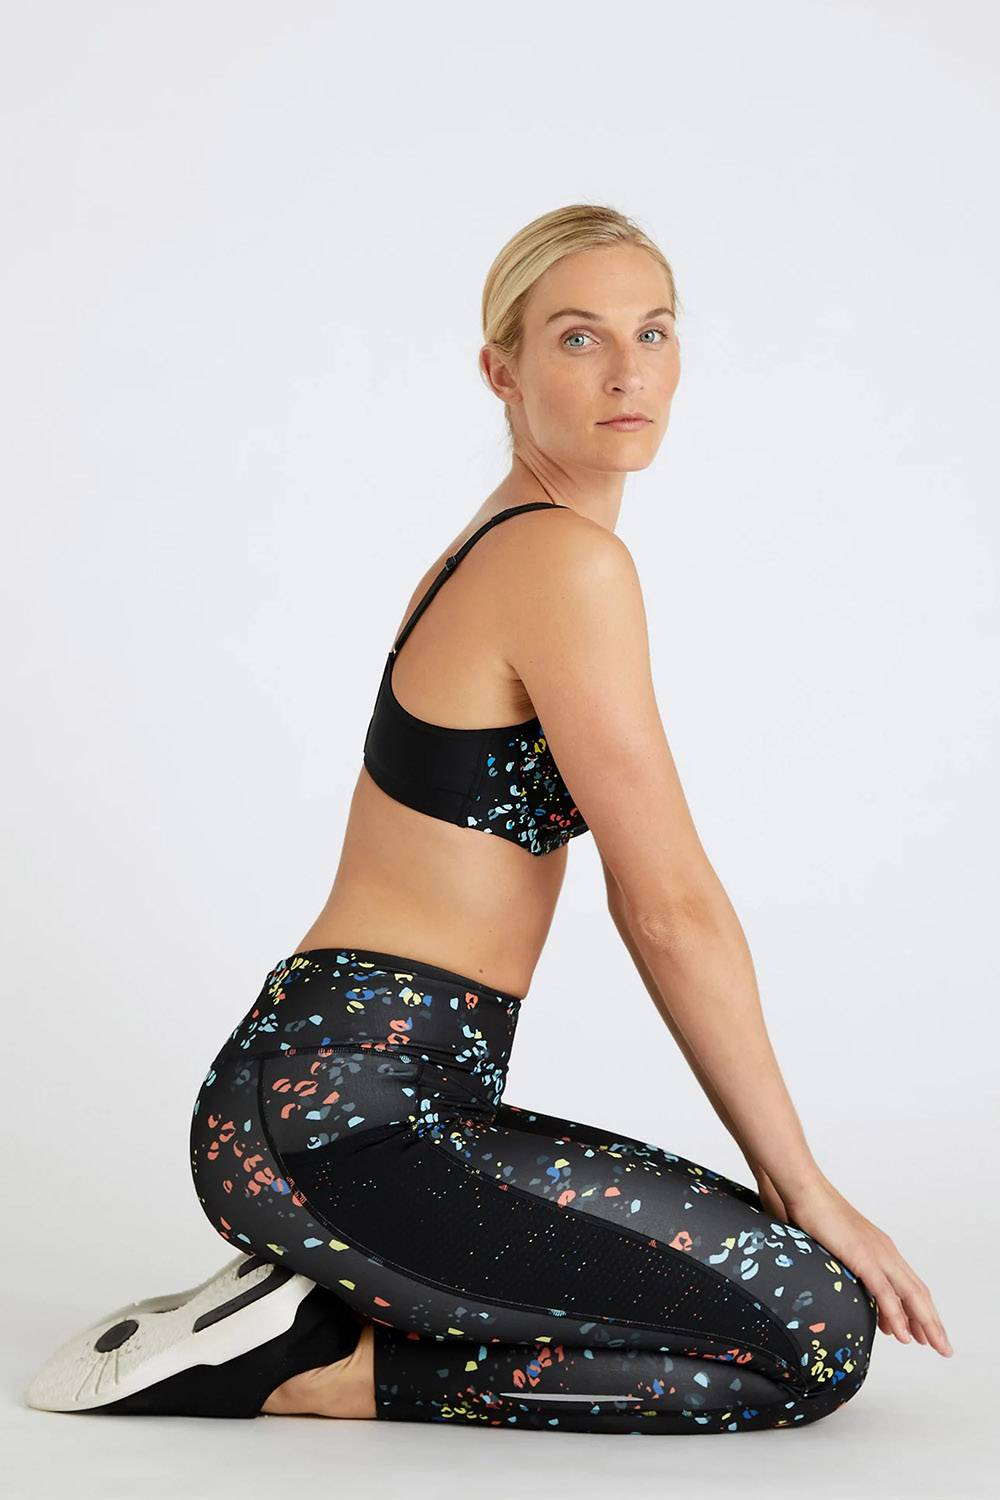 marks and spencer plus size workout clothing